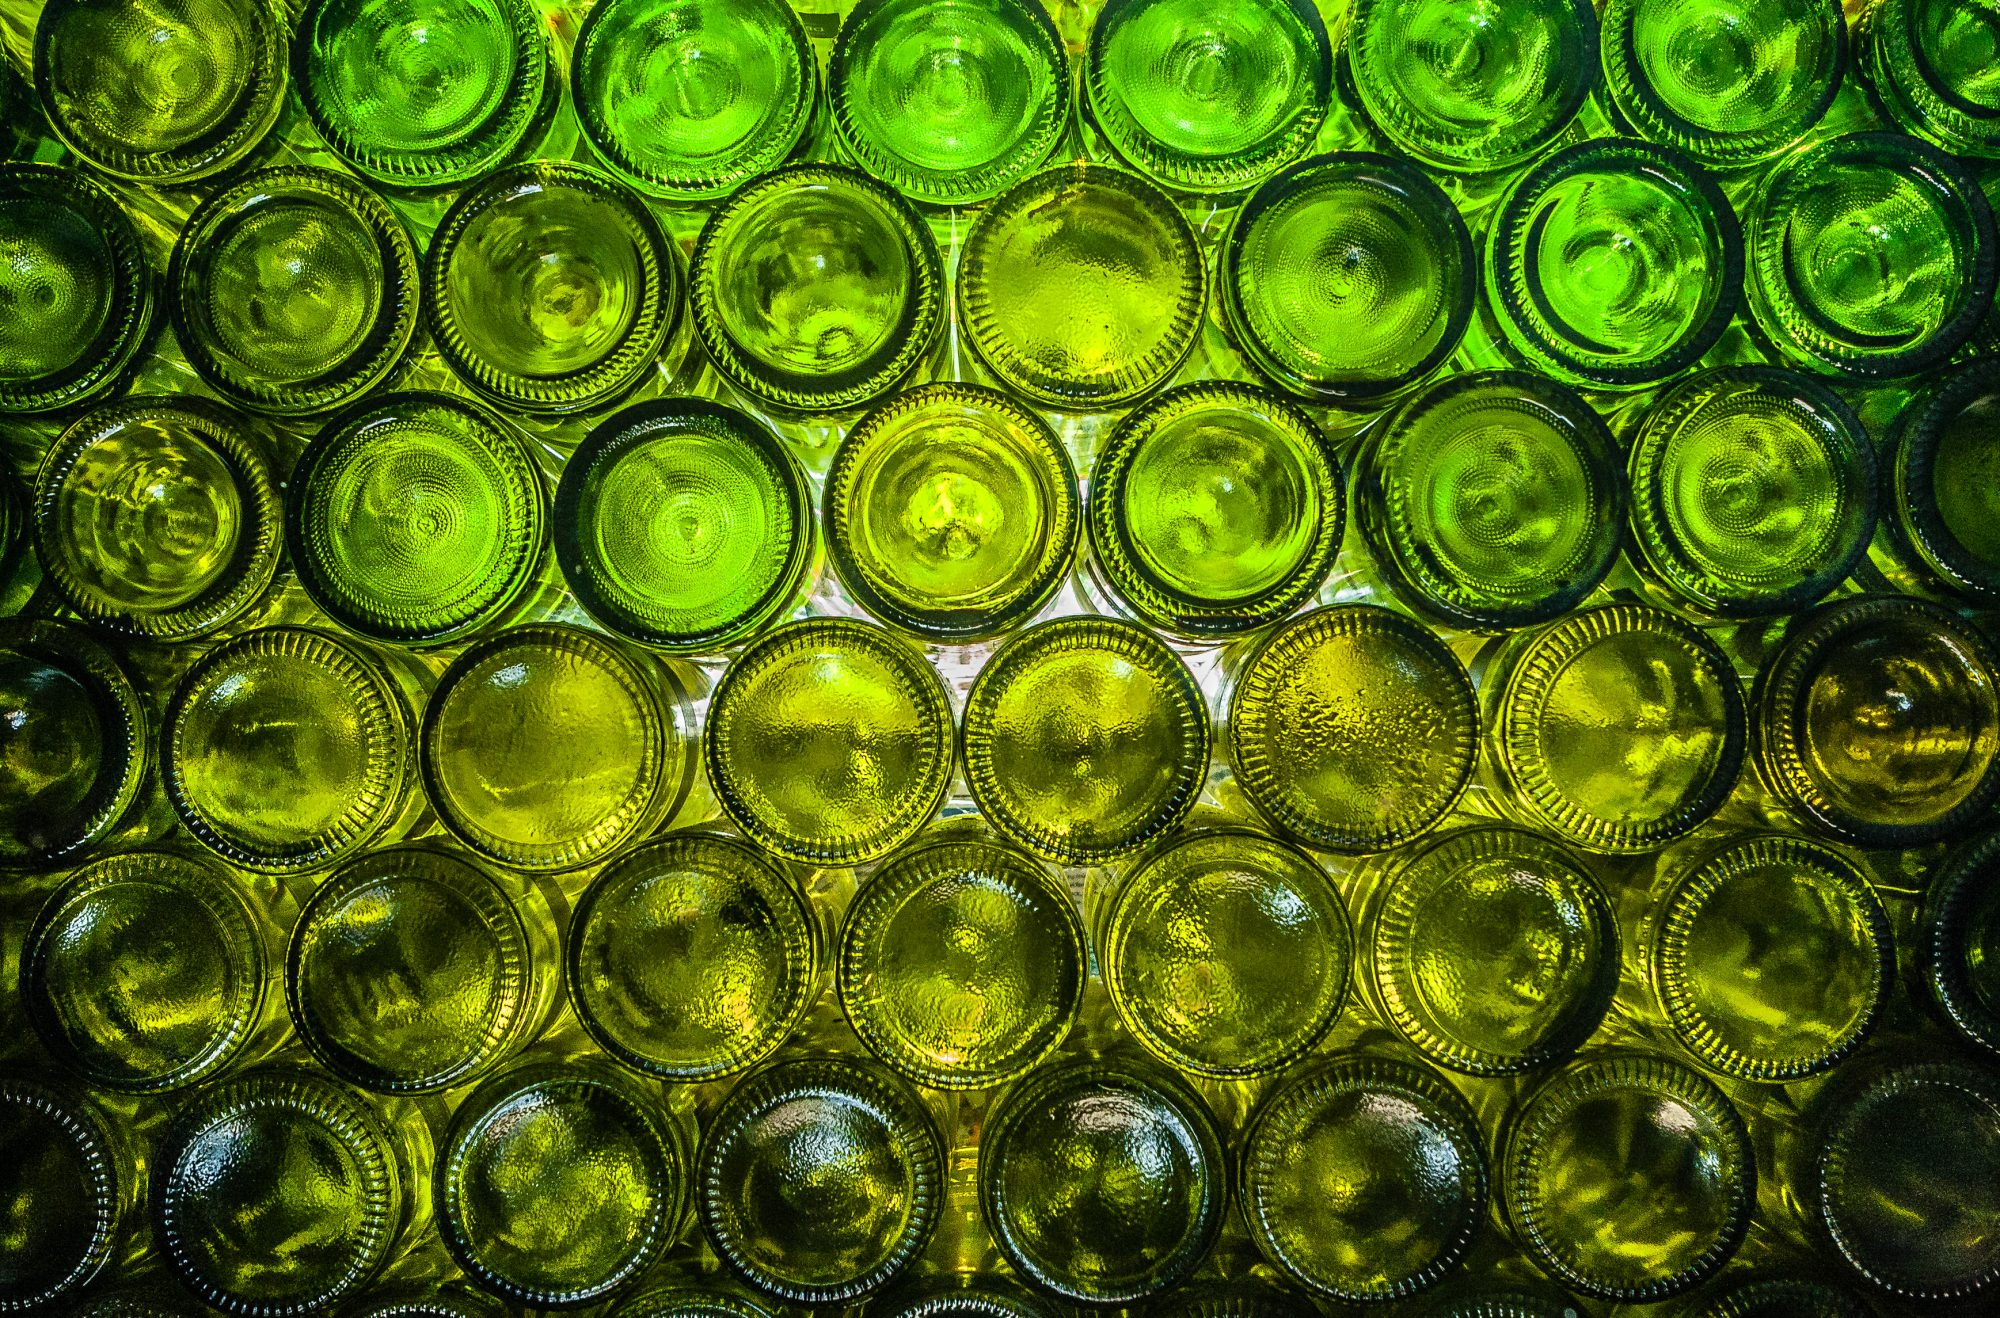 getty wine bottles 010719